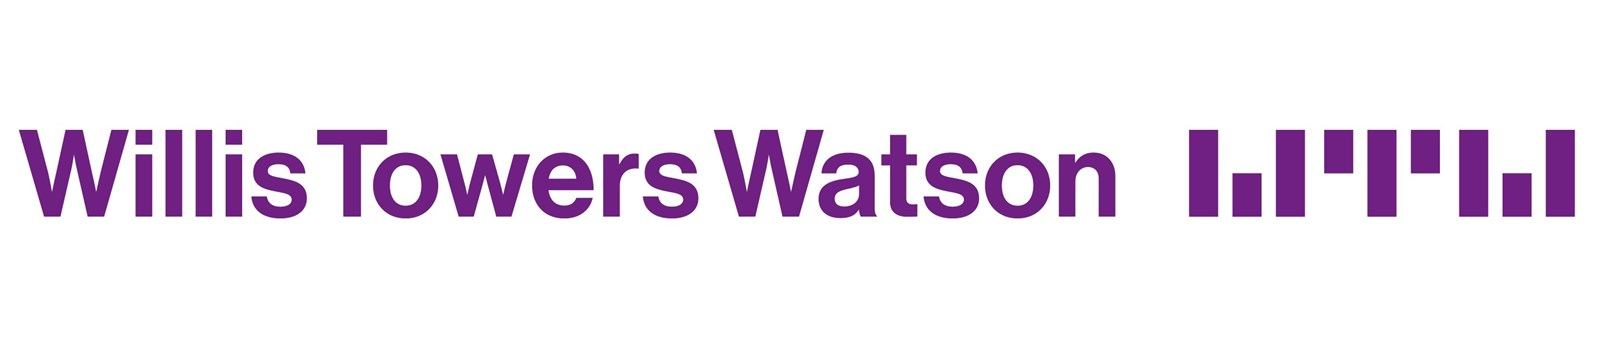 Willis Towers Watson Management (Guernsey) Limited Logo